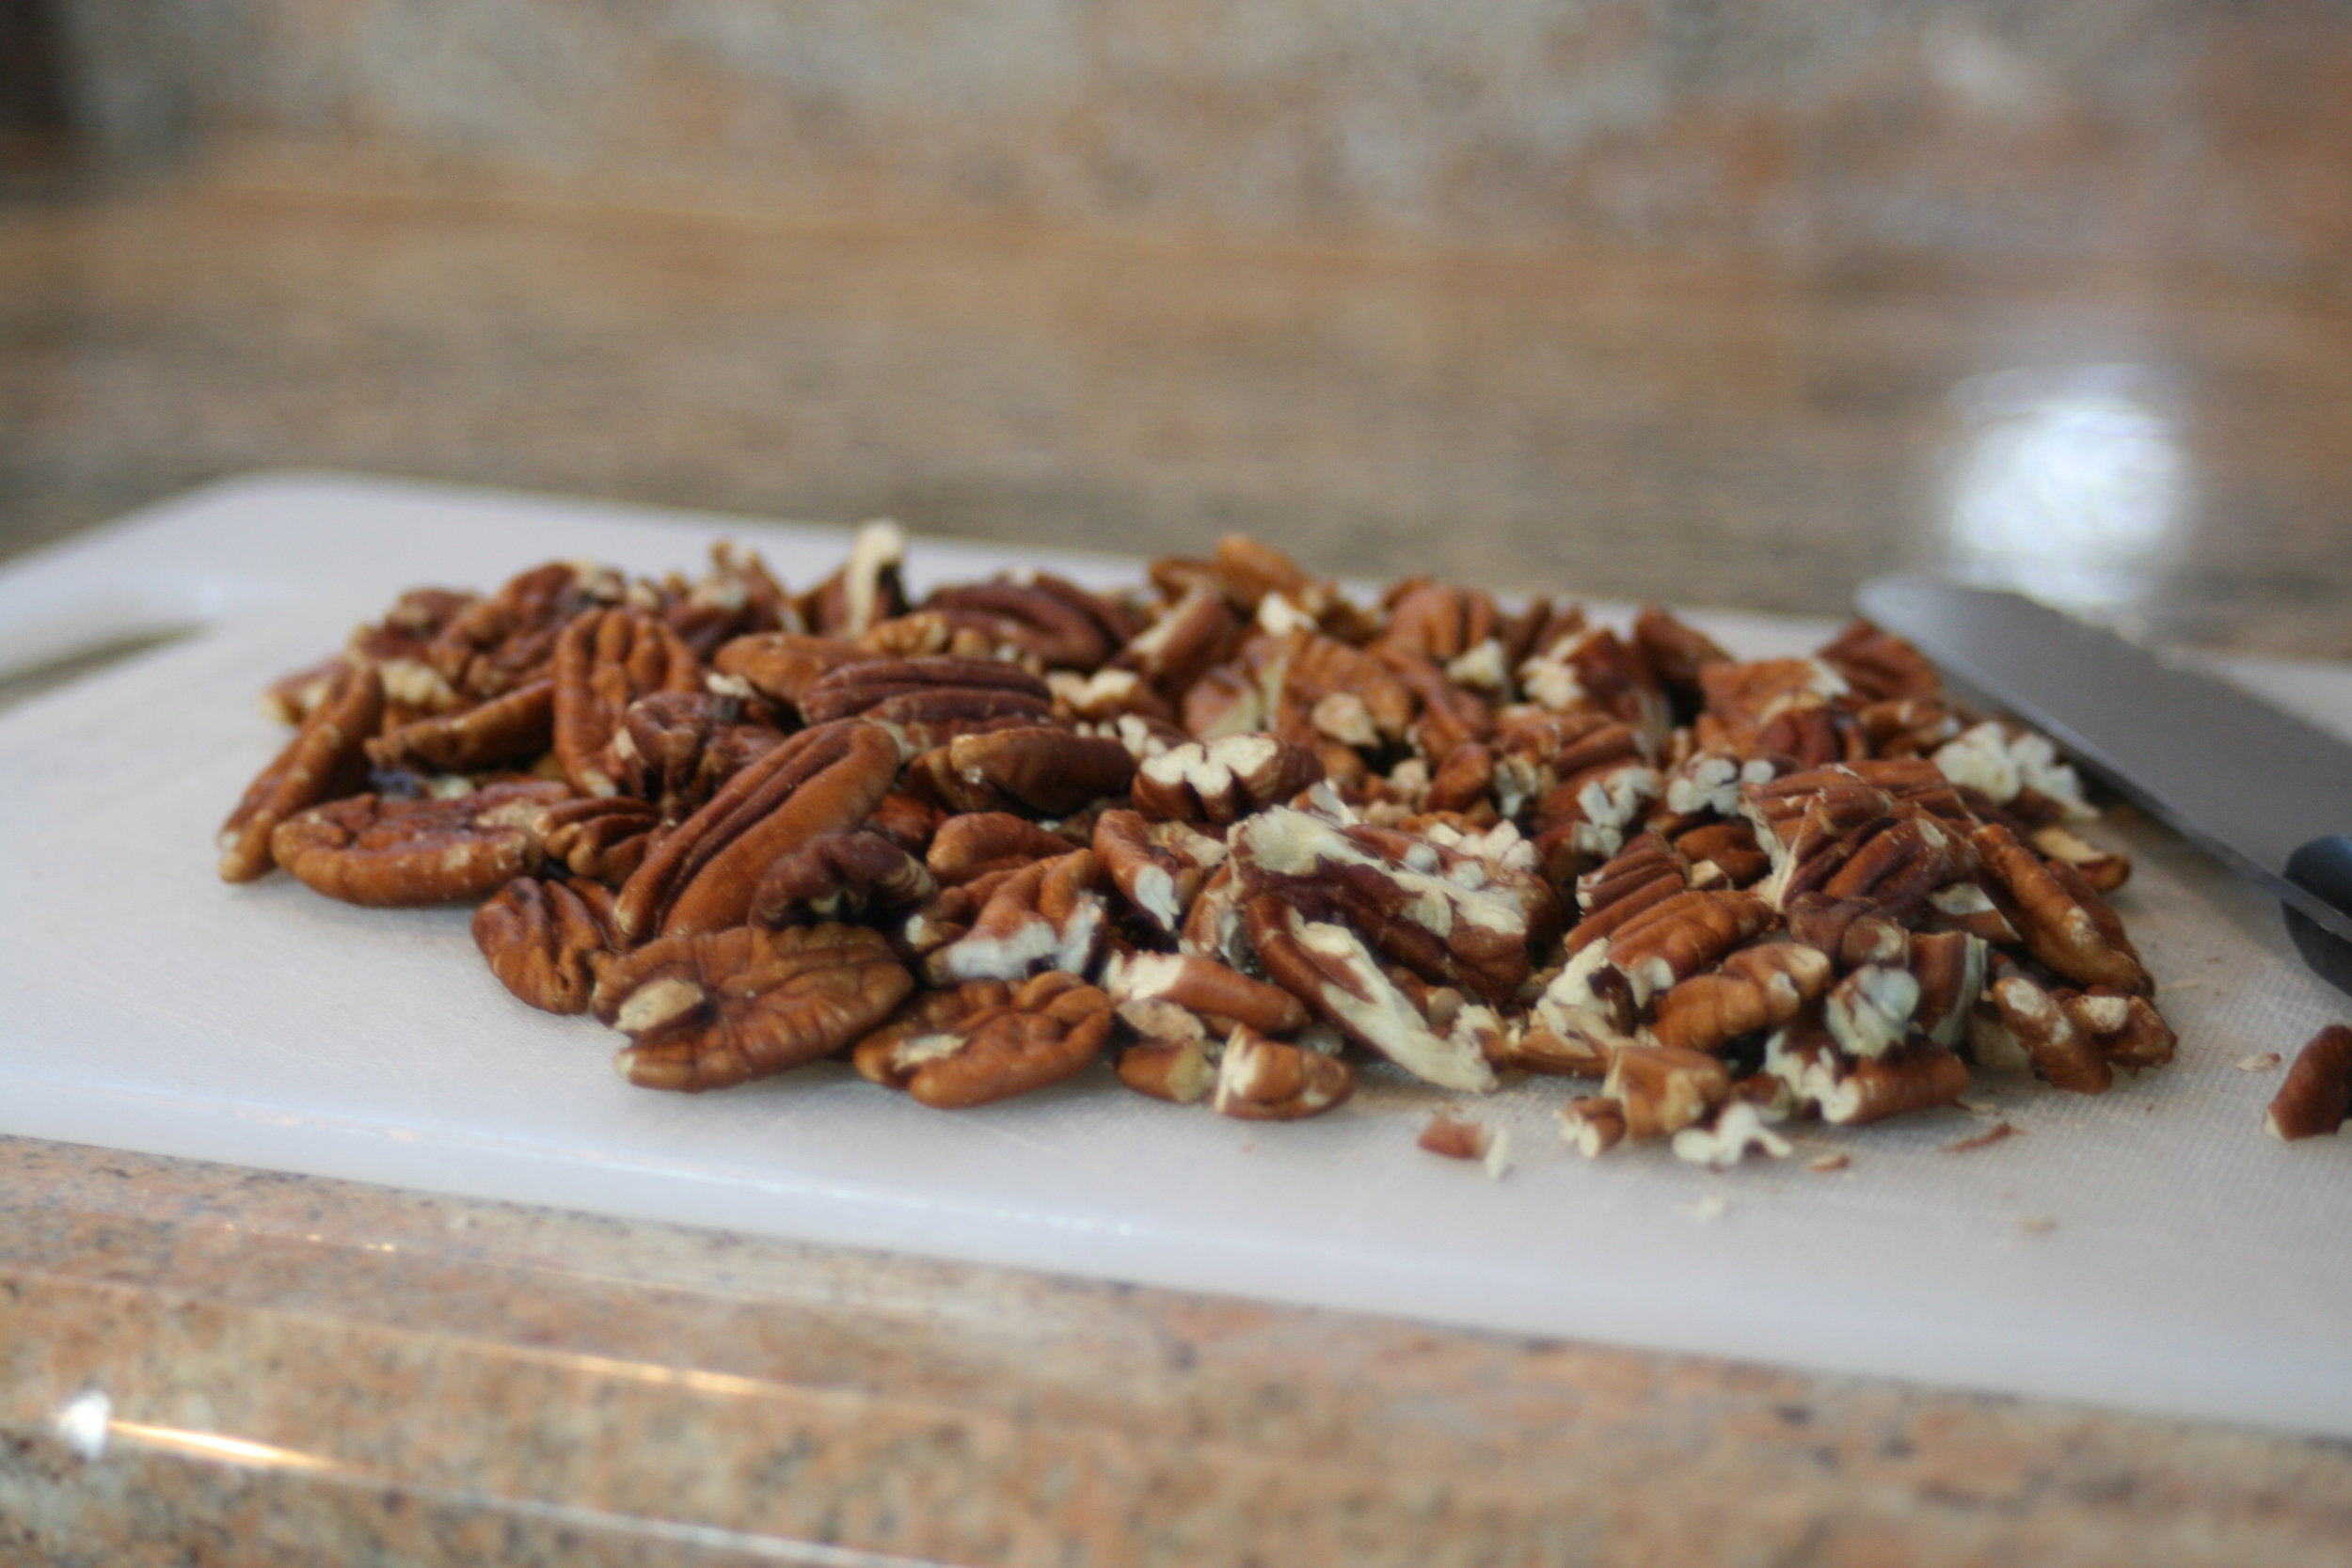 Coarsely chop nuts. Pecans are our favorite, but walnuts would be good too!